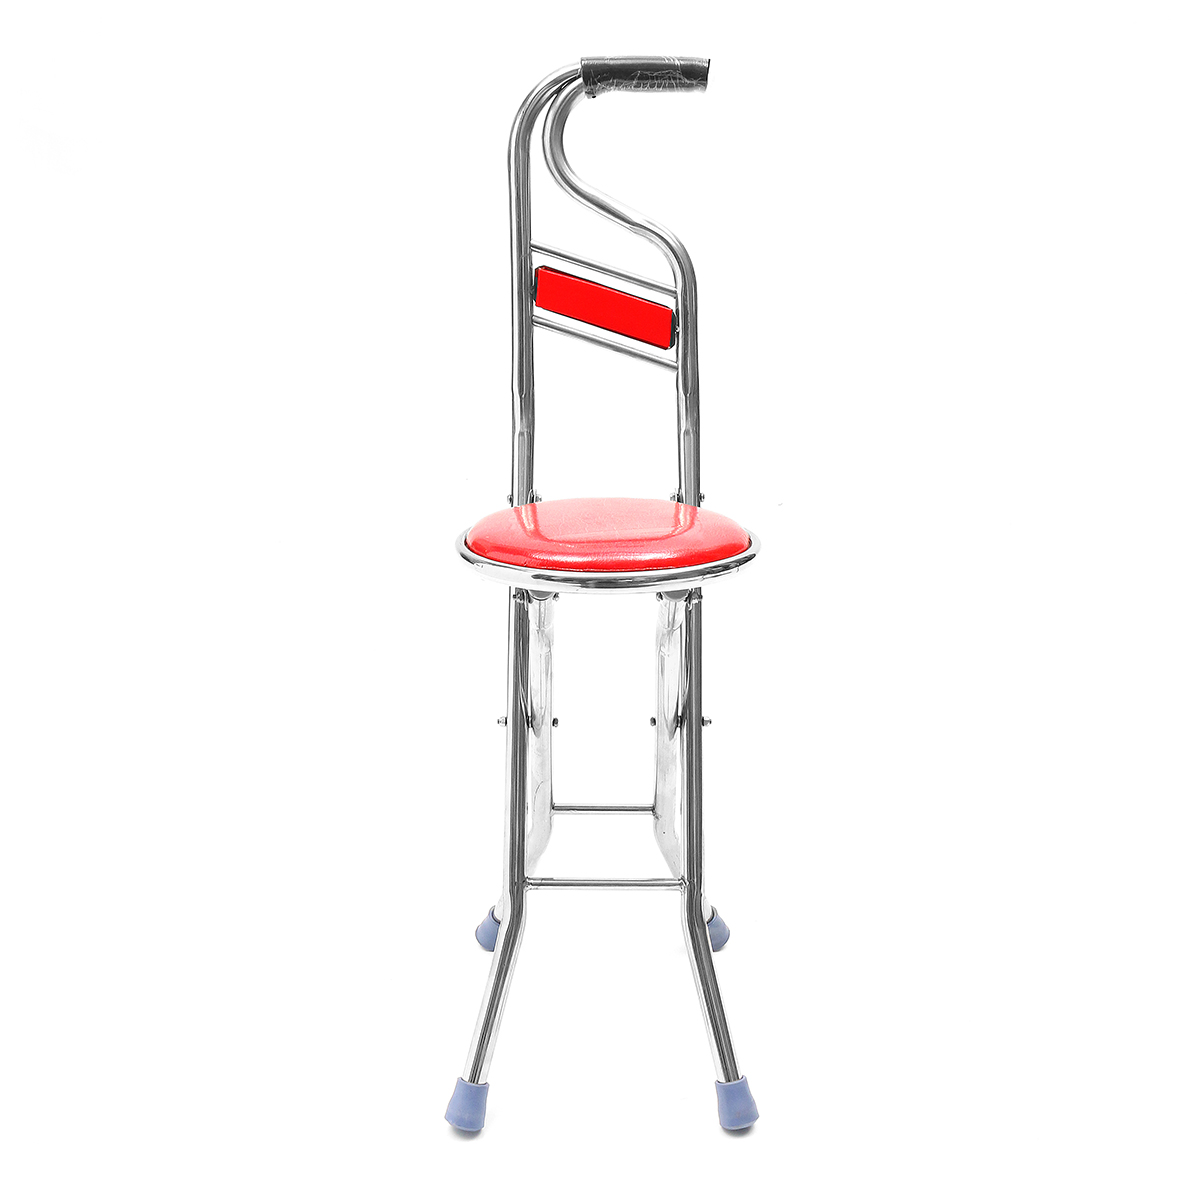 Walking Chair Other Industrial Equipment Stainless Steel Portable